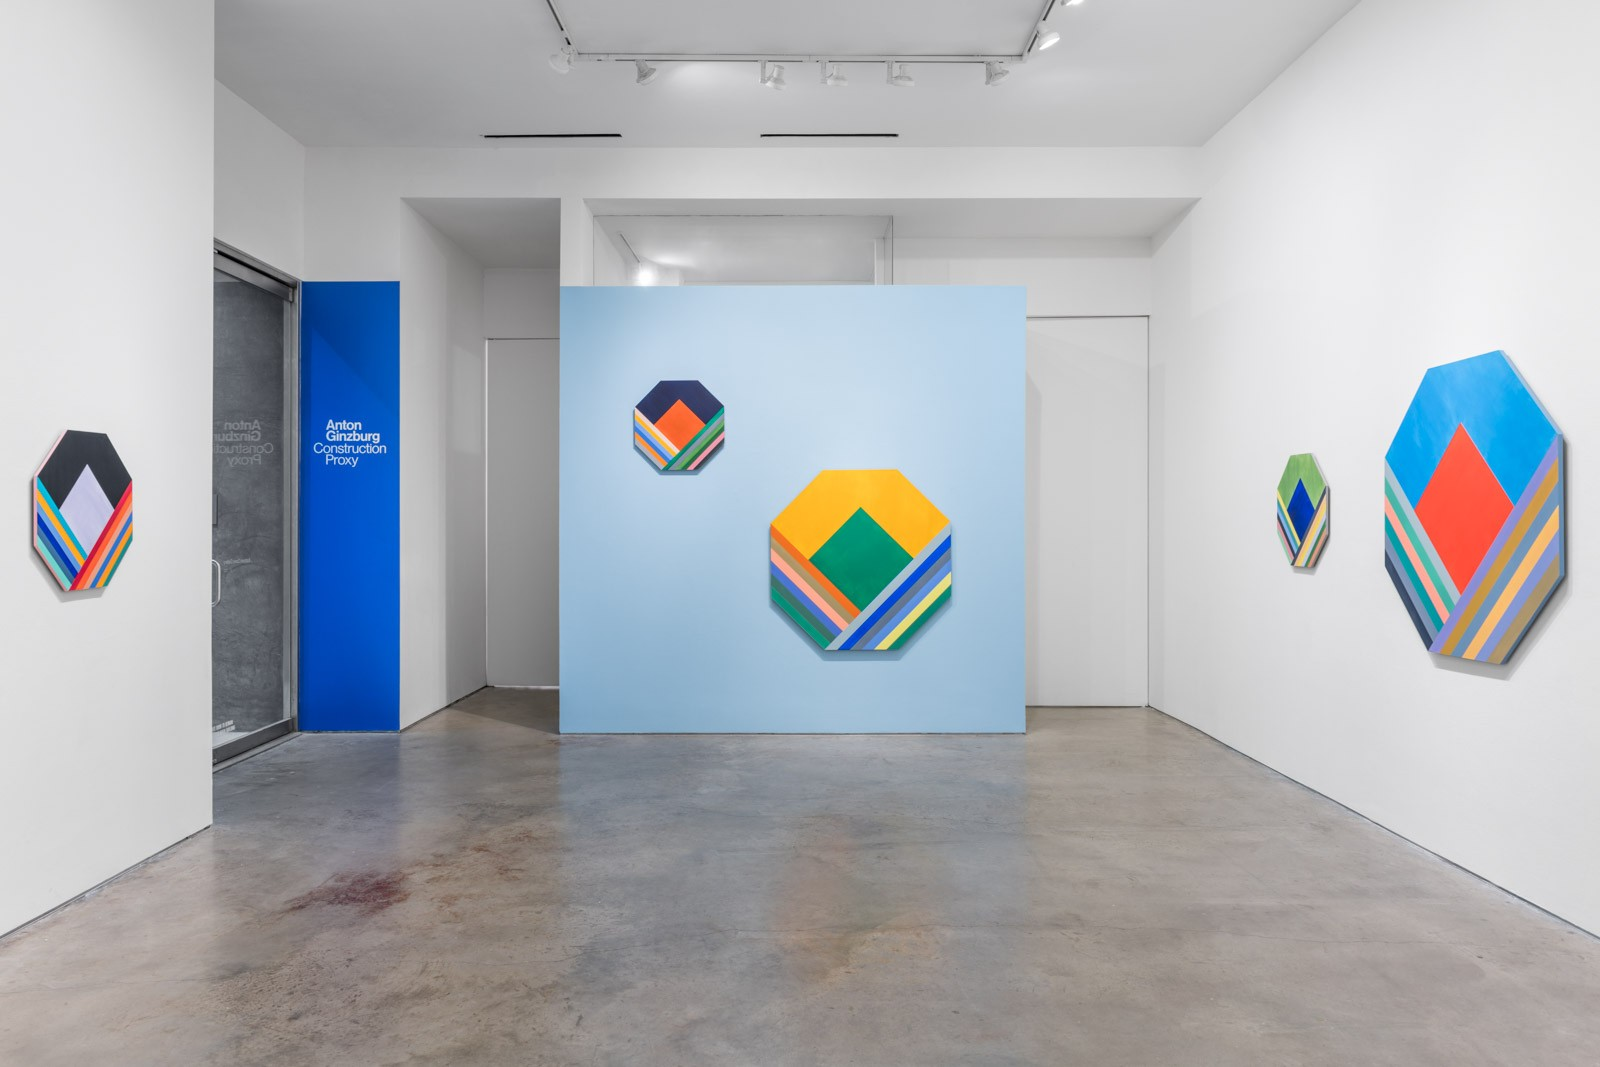 Installation view at Barbara Davis Gallery